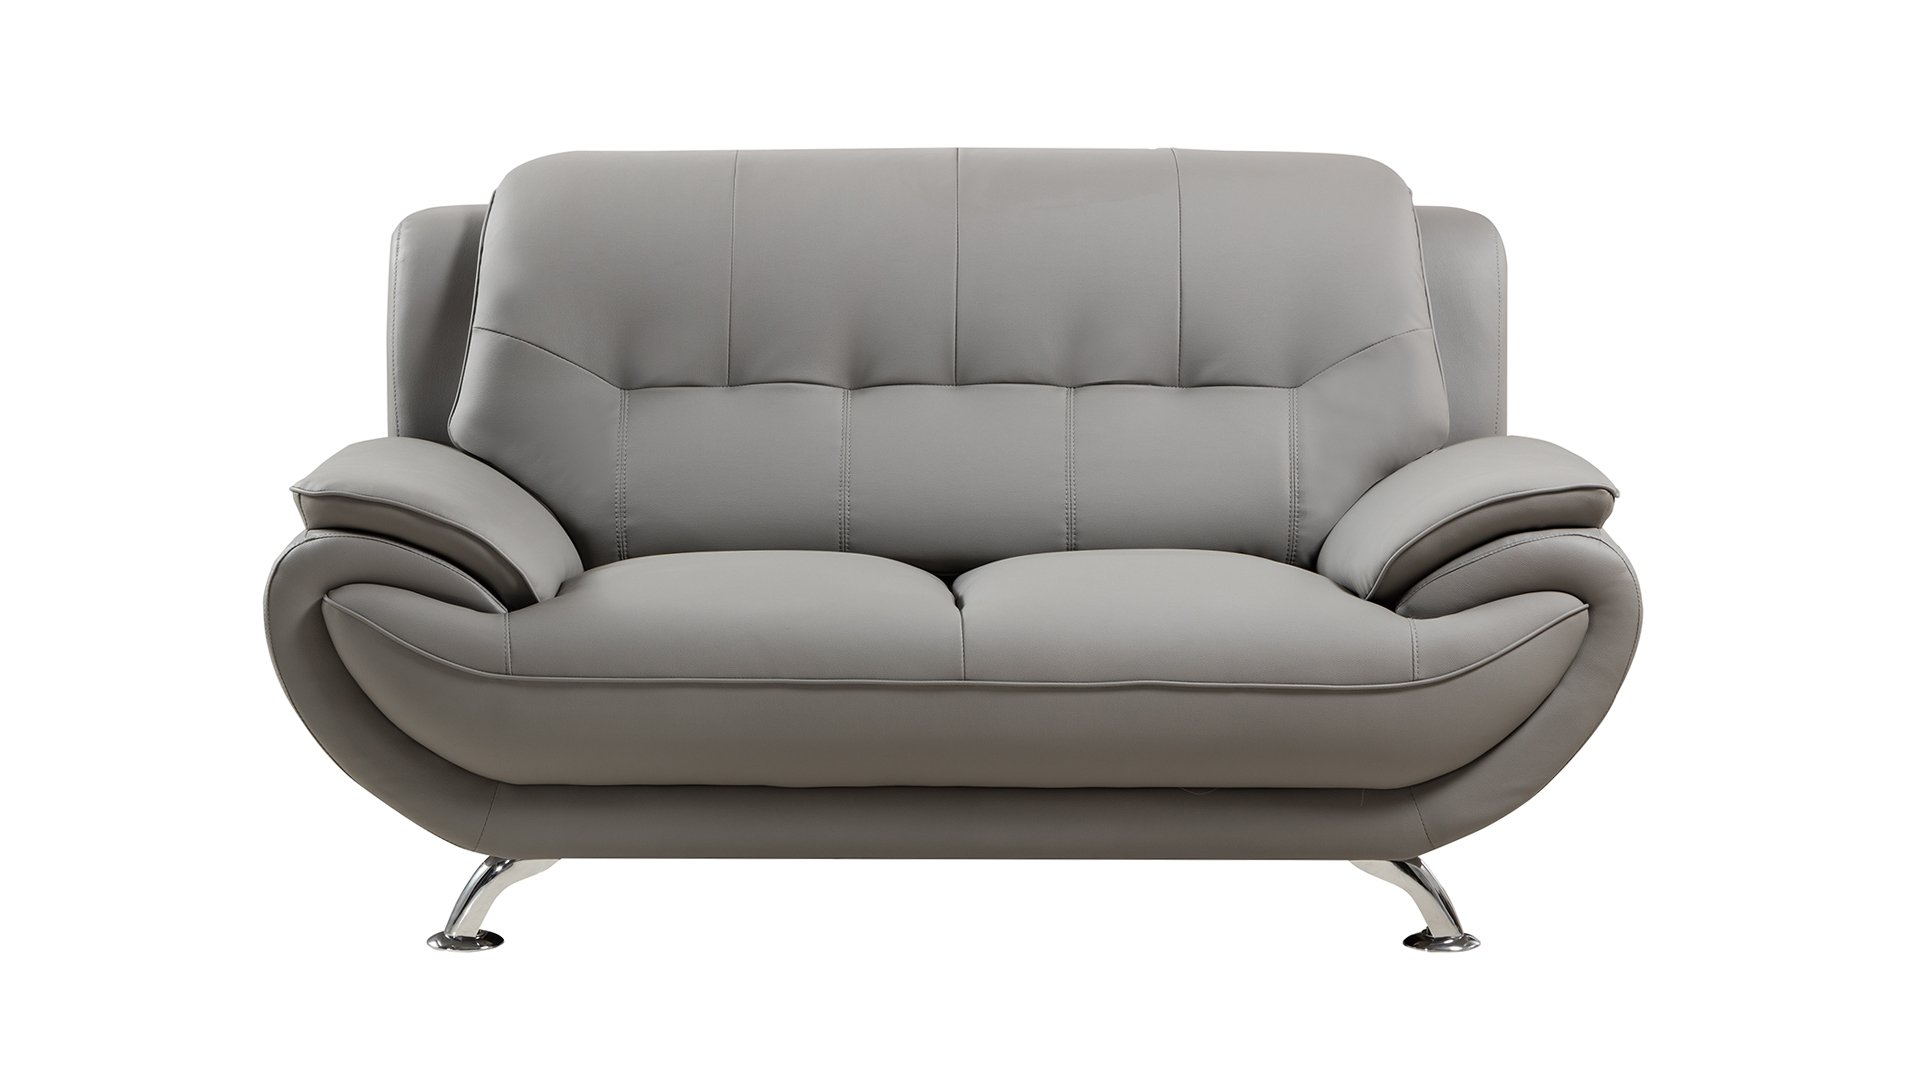 American Eagle Furniture Highland Bonded Leather Living Room Sofa Chair with Pillow Top Armrests, Gray